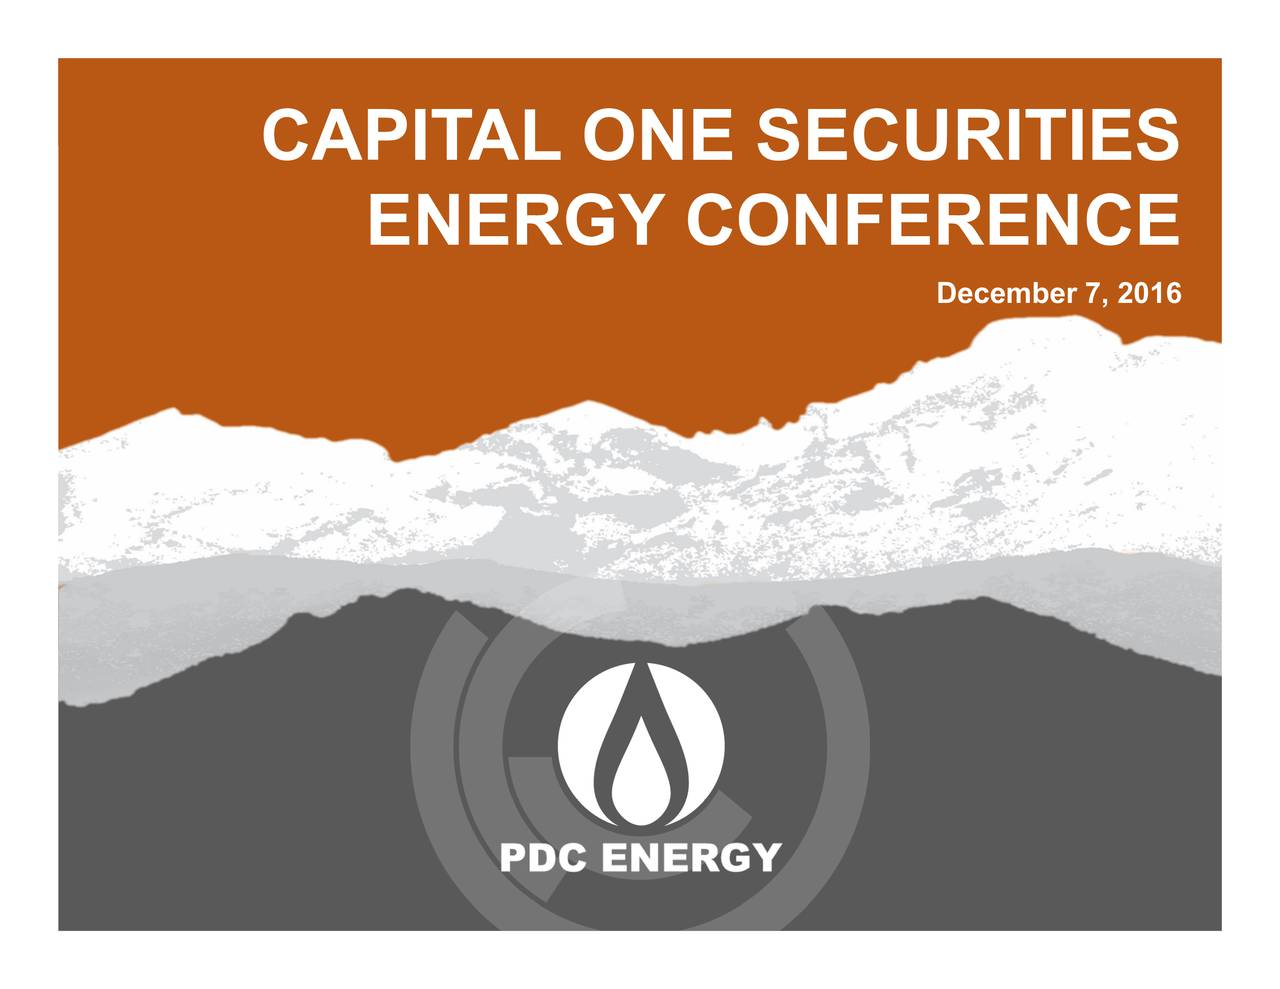 ENERGY CONFERENCE CAPIT AL ONE SECURITIES